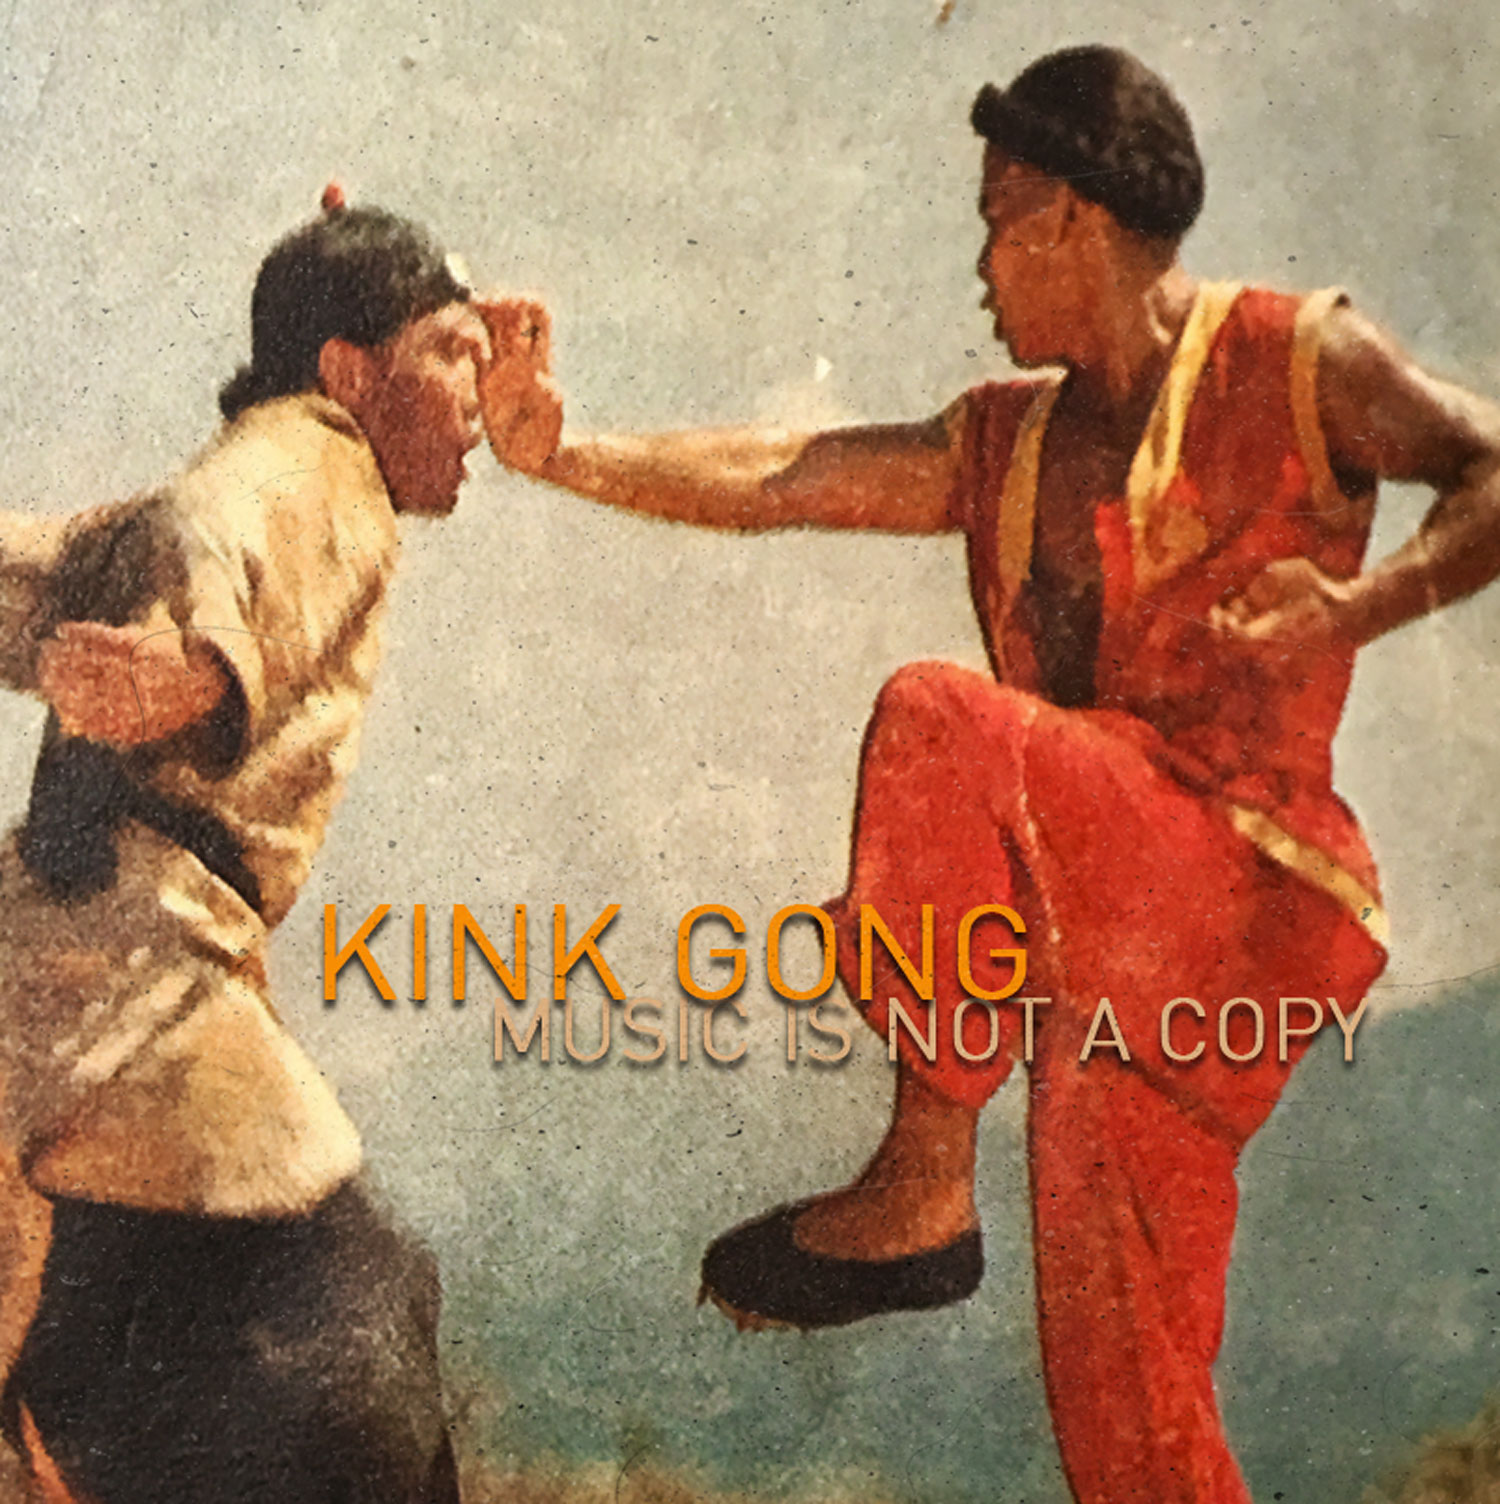 Kink Gong - Music is Not a Copy (CS60)